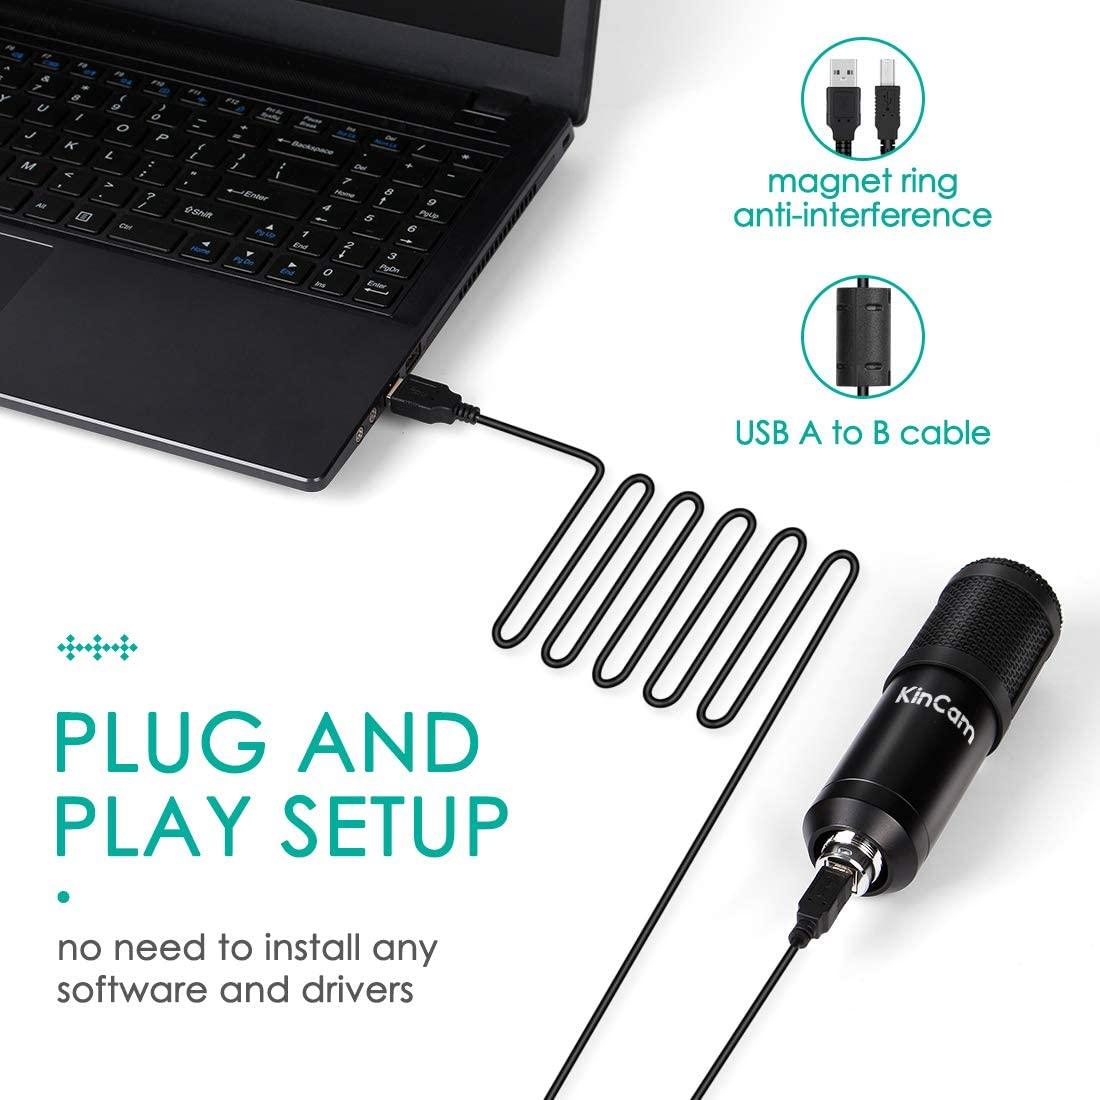 USB Streaming Podcast Microphone Kit,KinCam Professional 192KHZ//24Bit Studio Cardioid Condenser Computer PC Mic Kit with Scissor Arm Shock Mount Stand Pop Filter for Music Recording,YouTube,Gaming